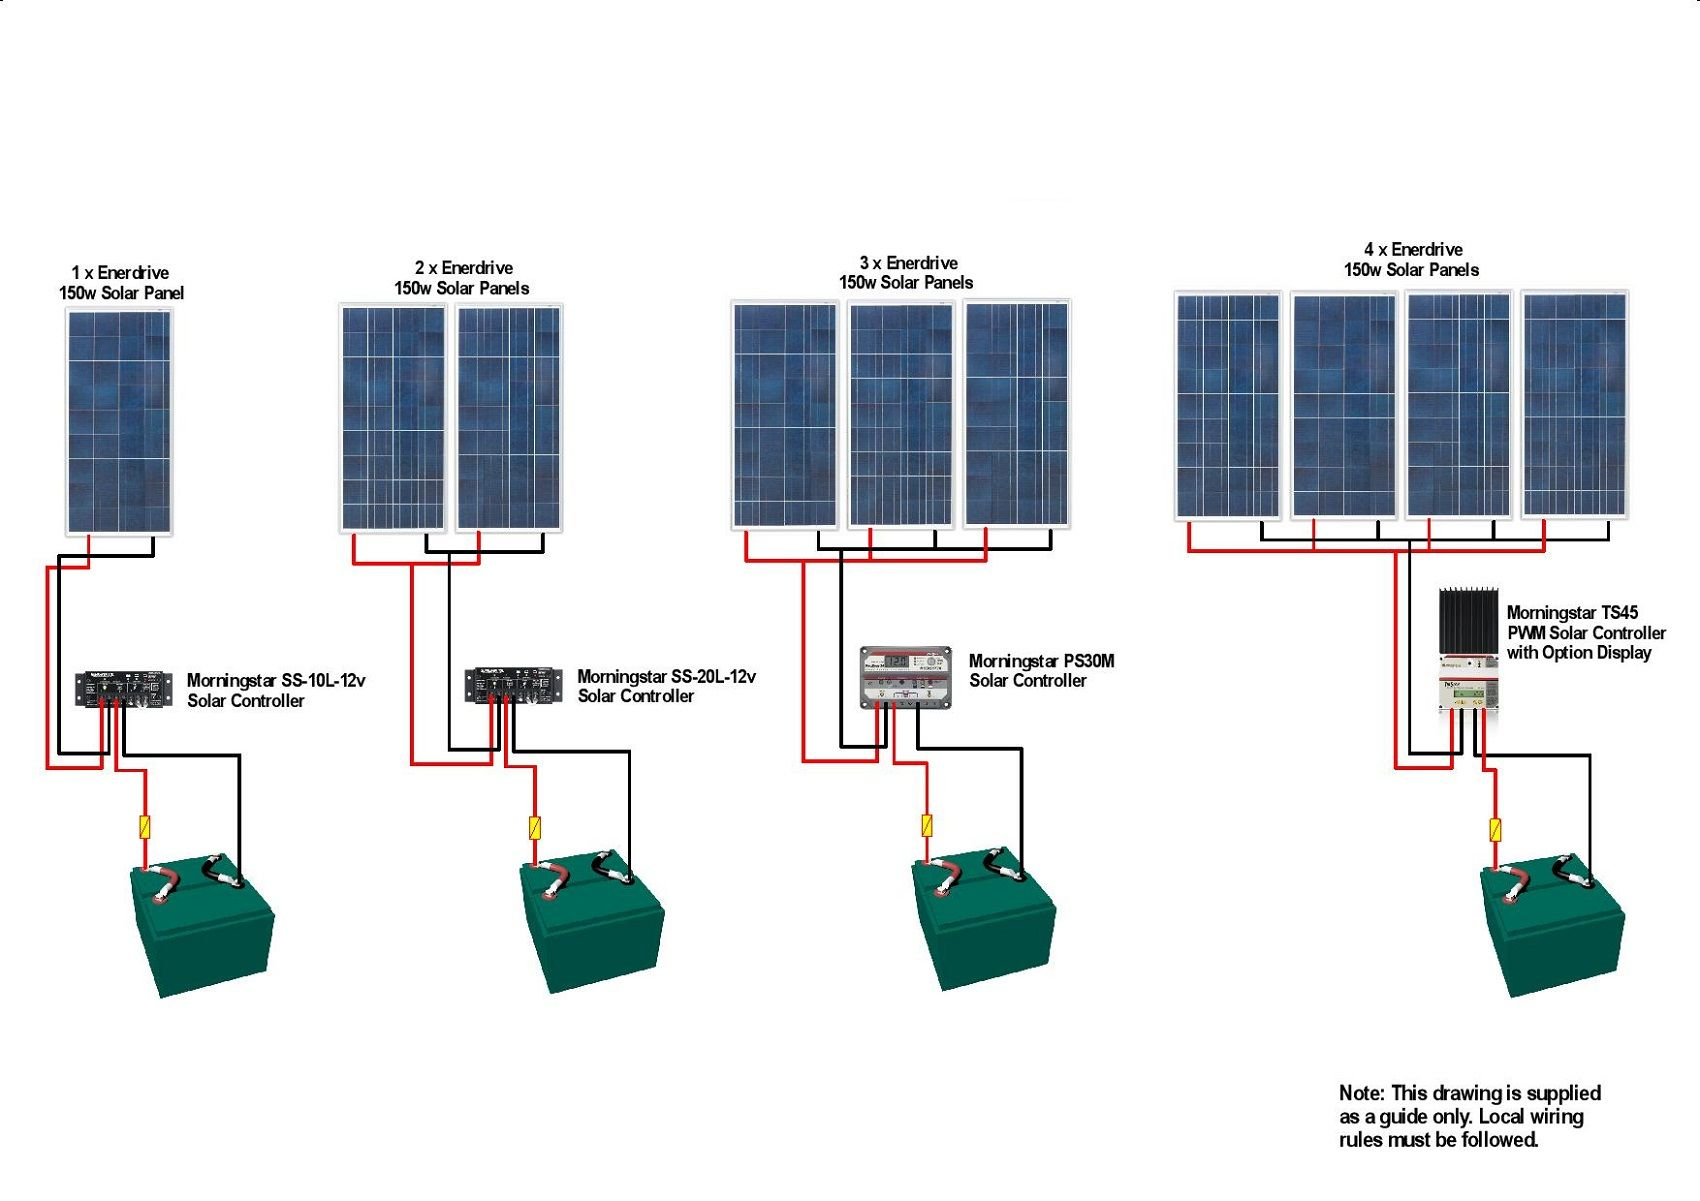 bp solar panels wiring diagram solar panel diagrams to print hq printable diagram [ 1700 x 1201 Pixel ]